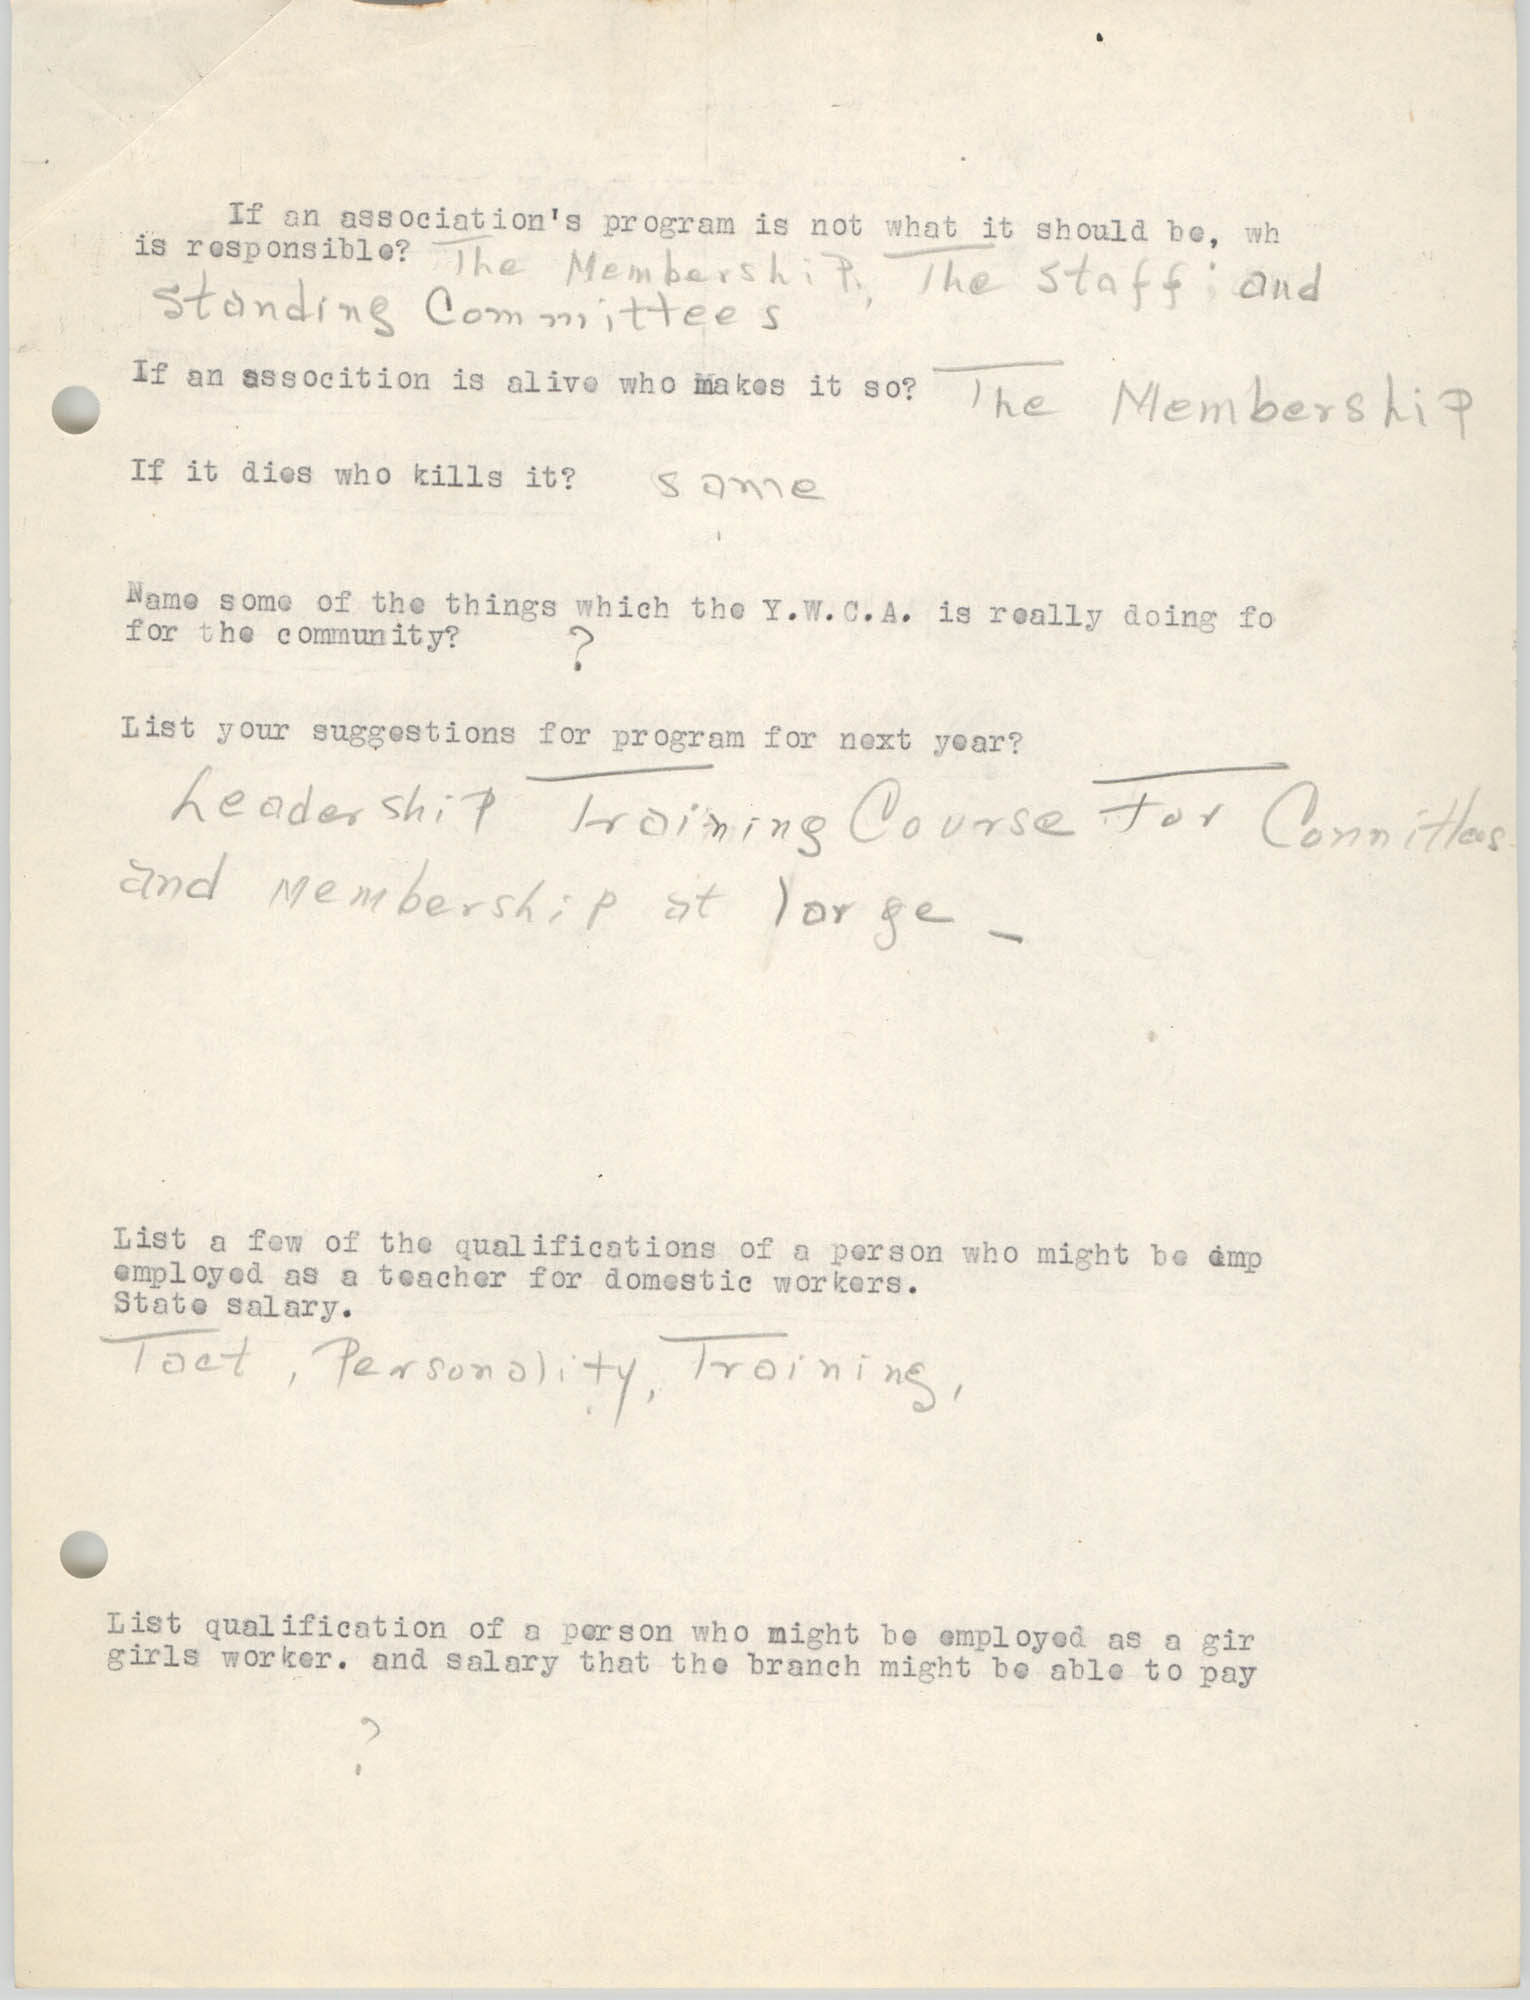 Coming Street Y.W.C.A., Completed Questionnaire Number 7, Page 2